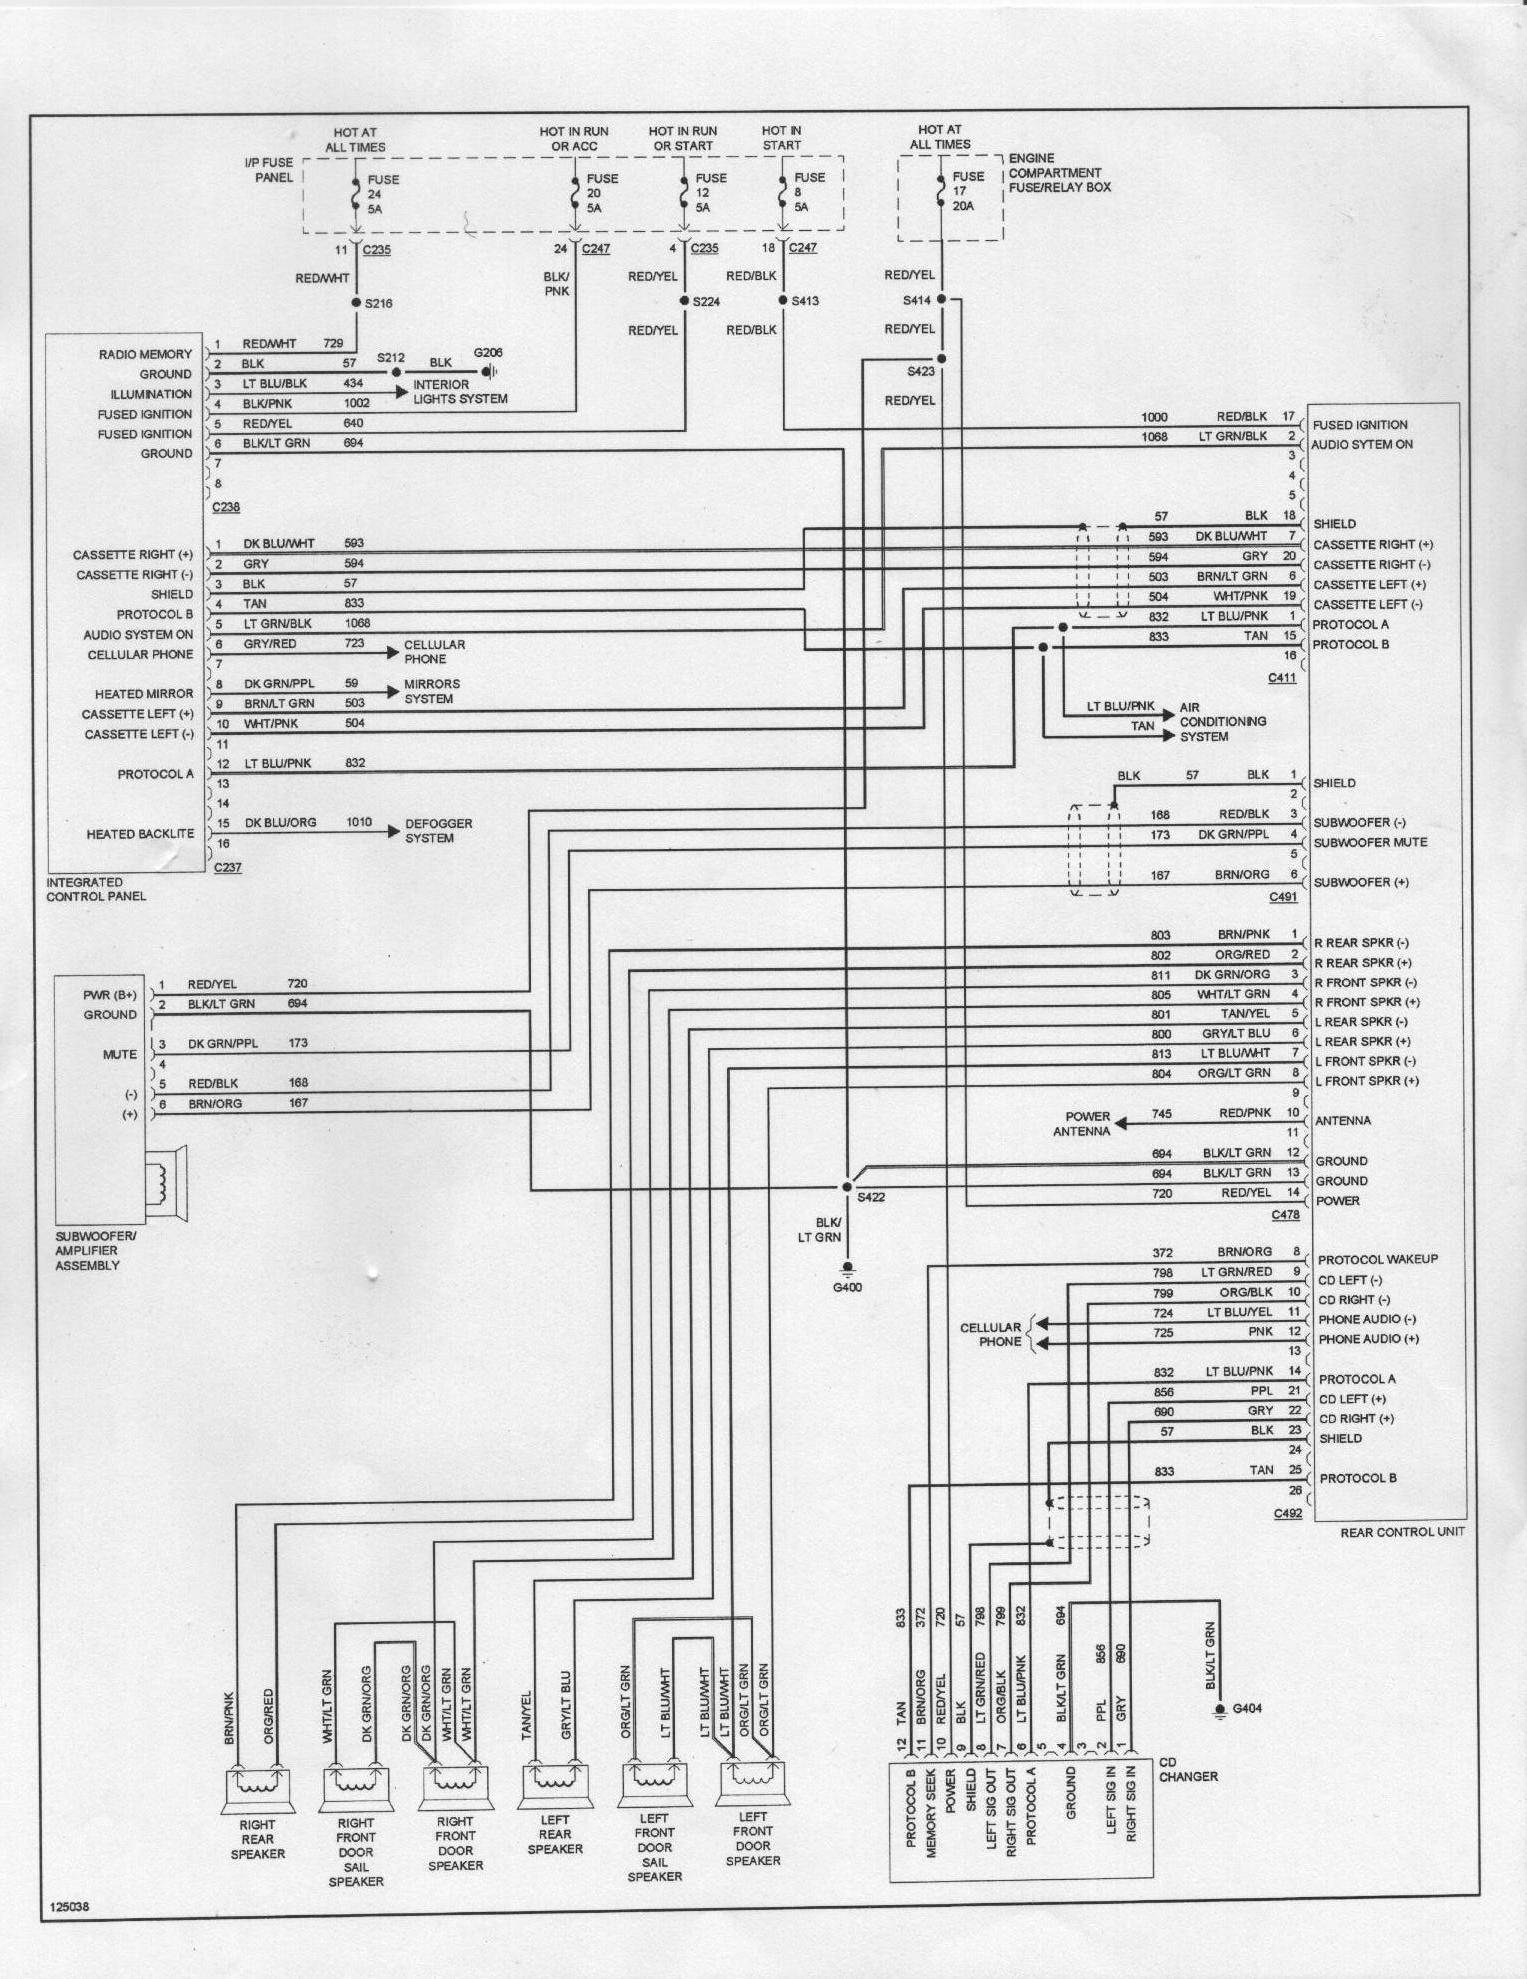 2000 mustang wiring diagram nema 14 30 scosche orange wire to _______ - taurus car club of america : ford forum